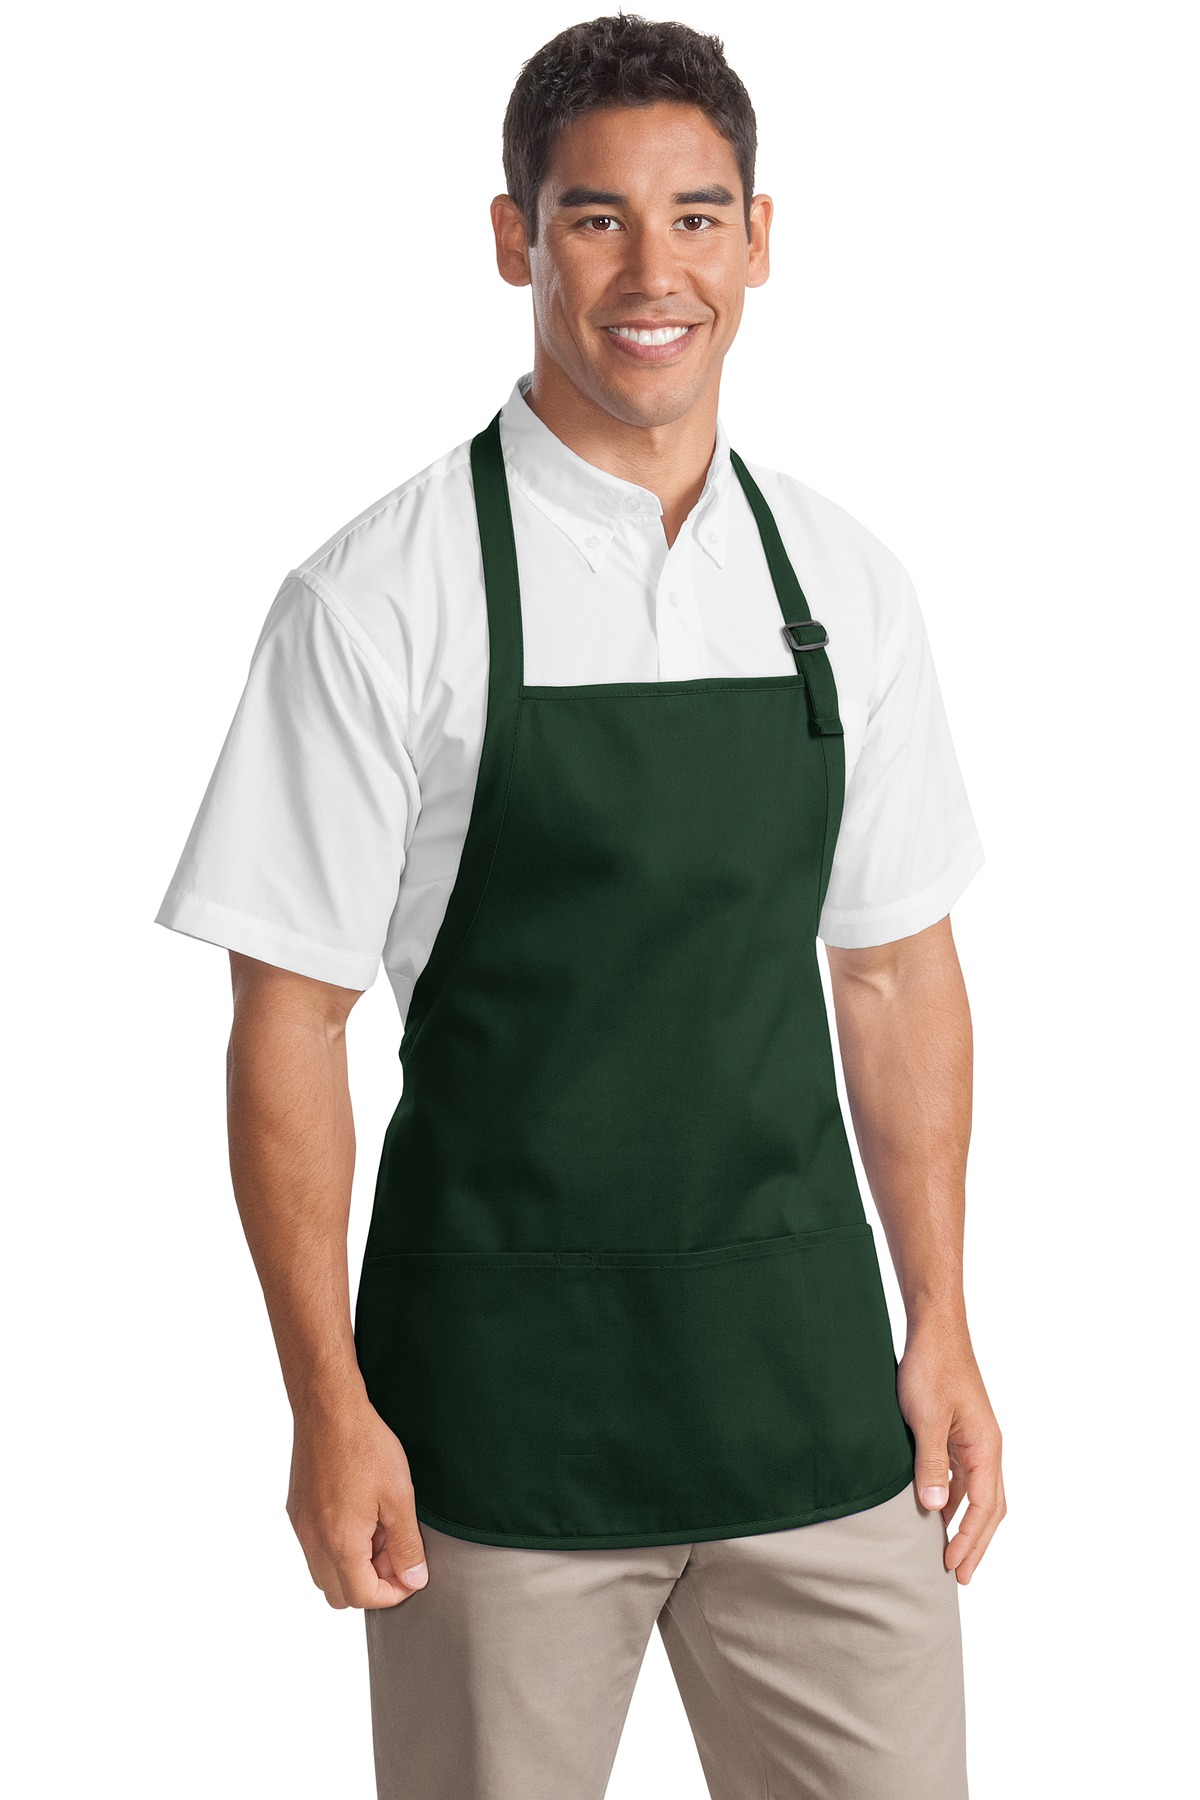 Port Authority ®  Medium-Length Apron with Pouch Pockets.  A510 - Hunter